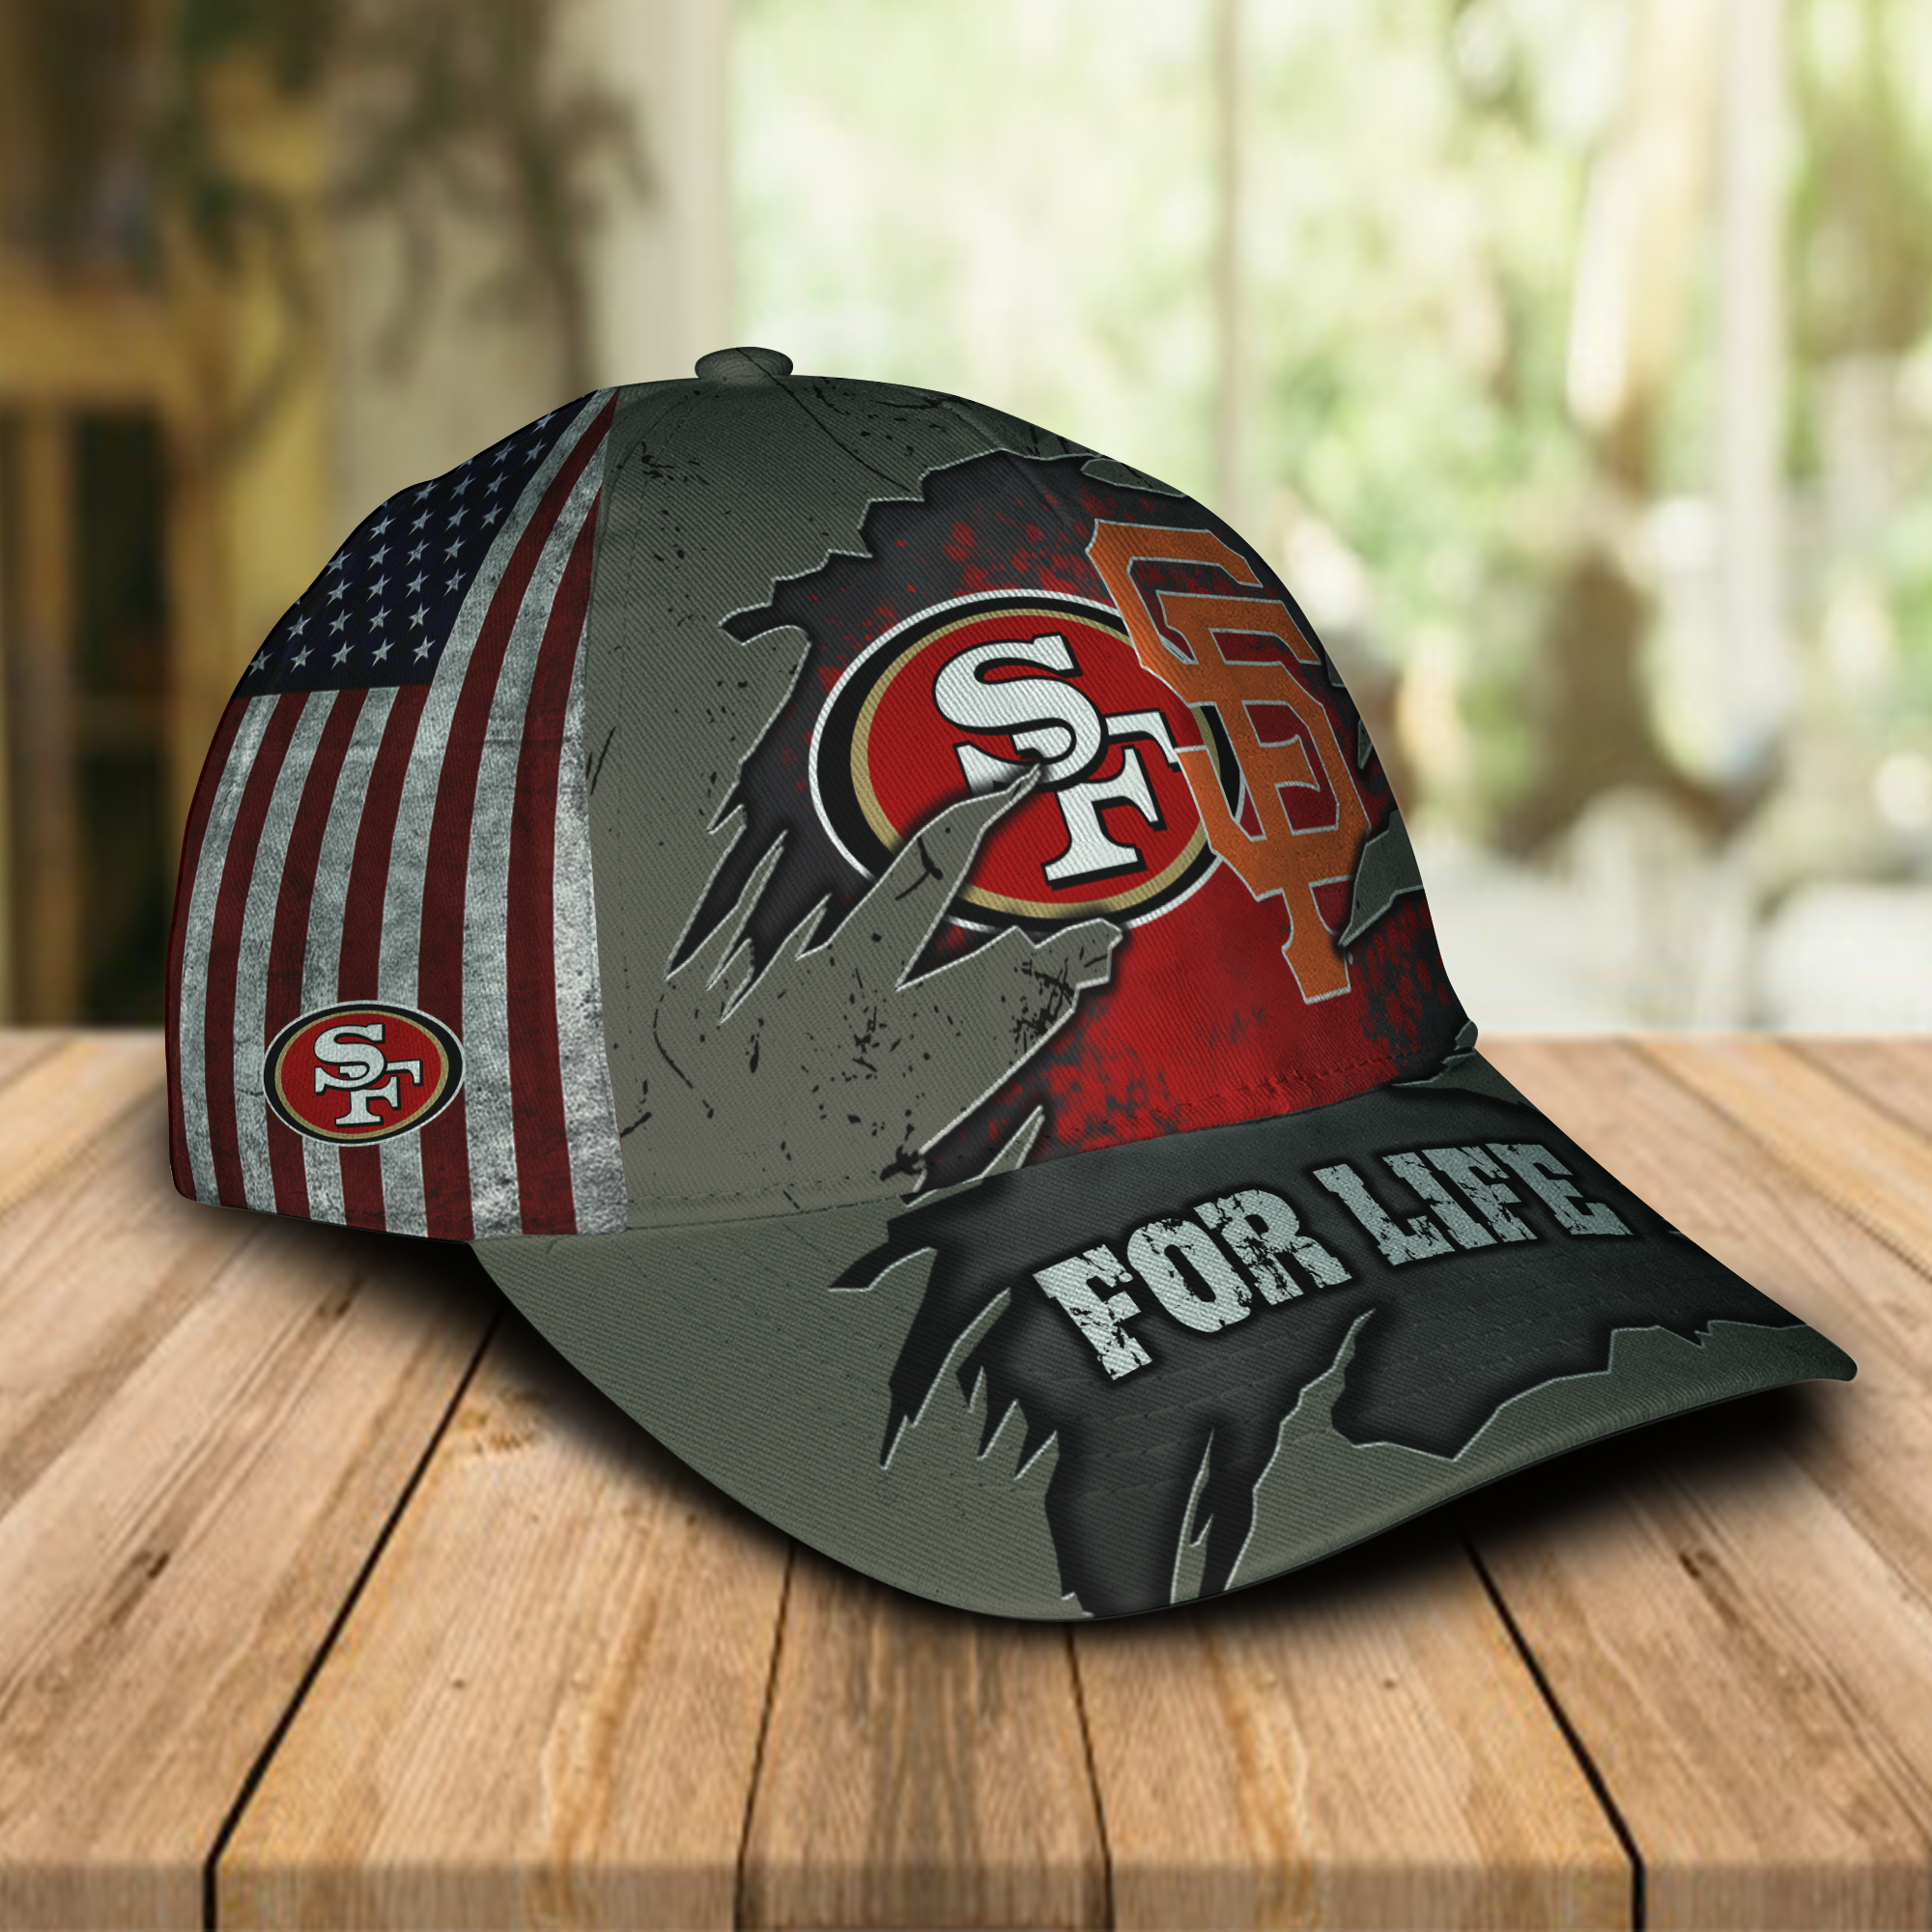 San francisco 49ers and san francisco giants for life cap 1